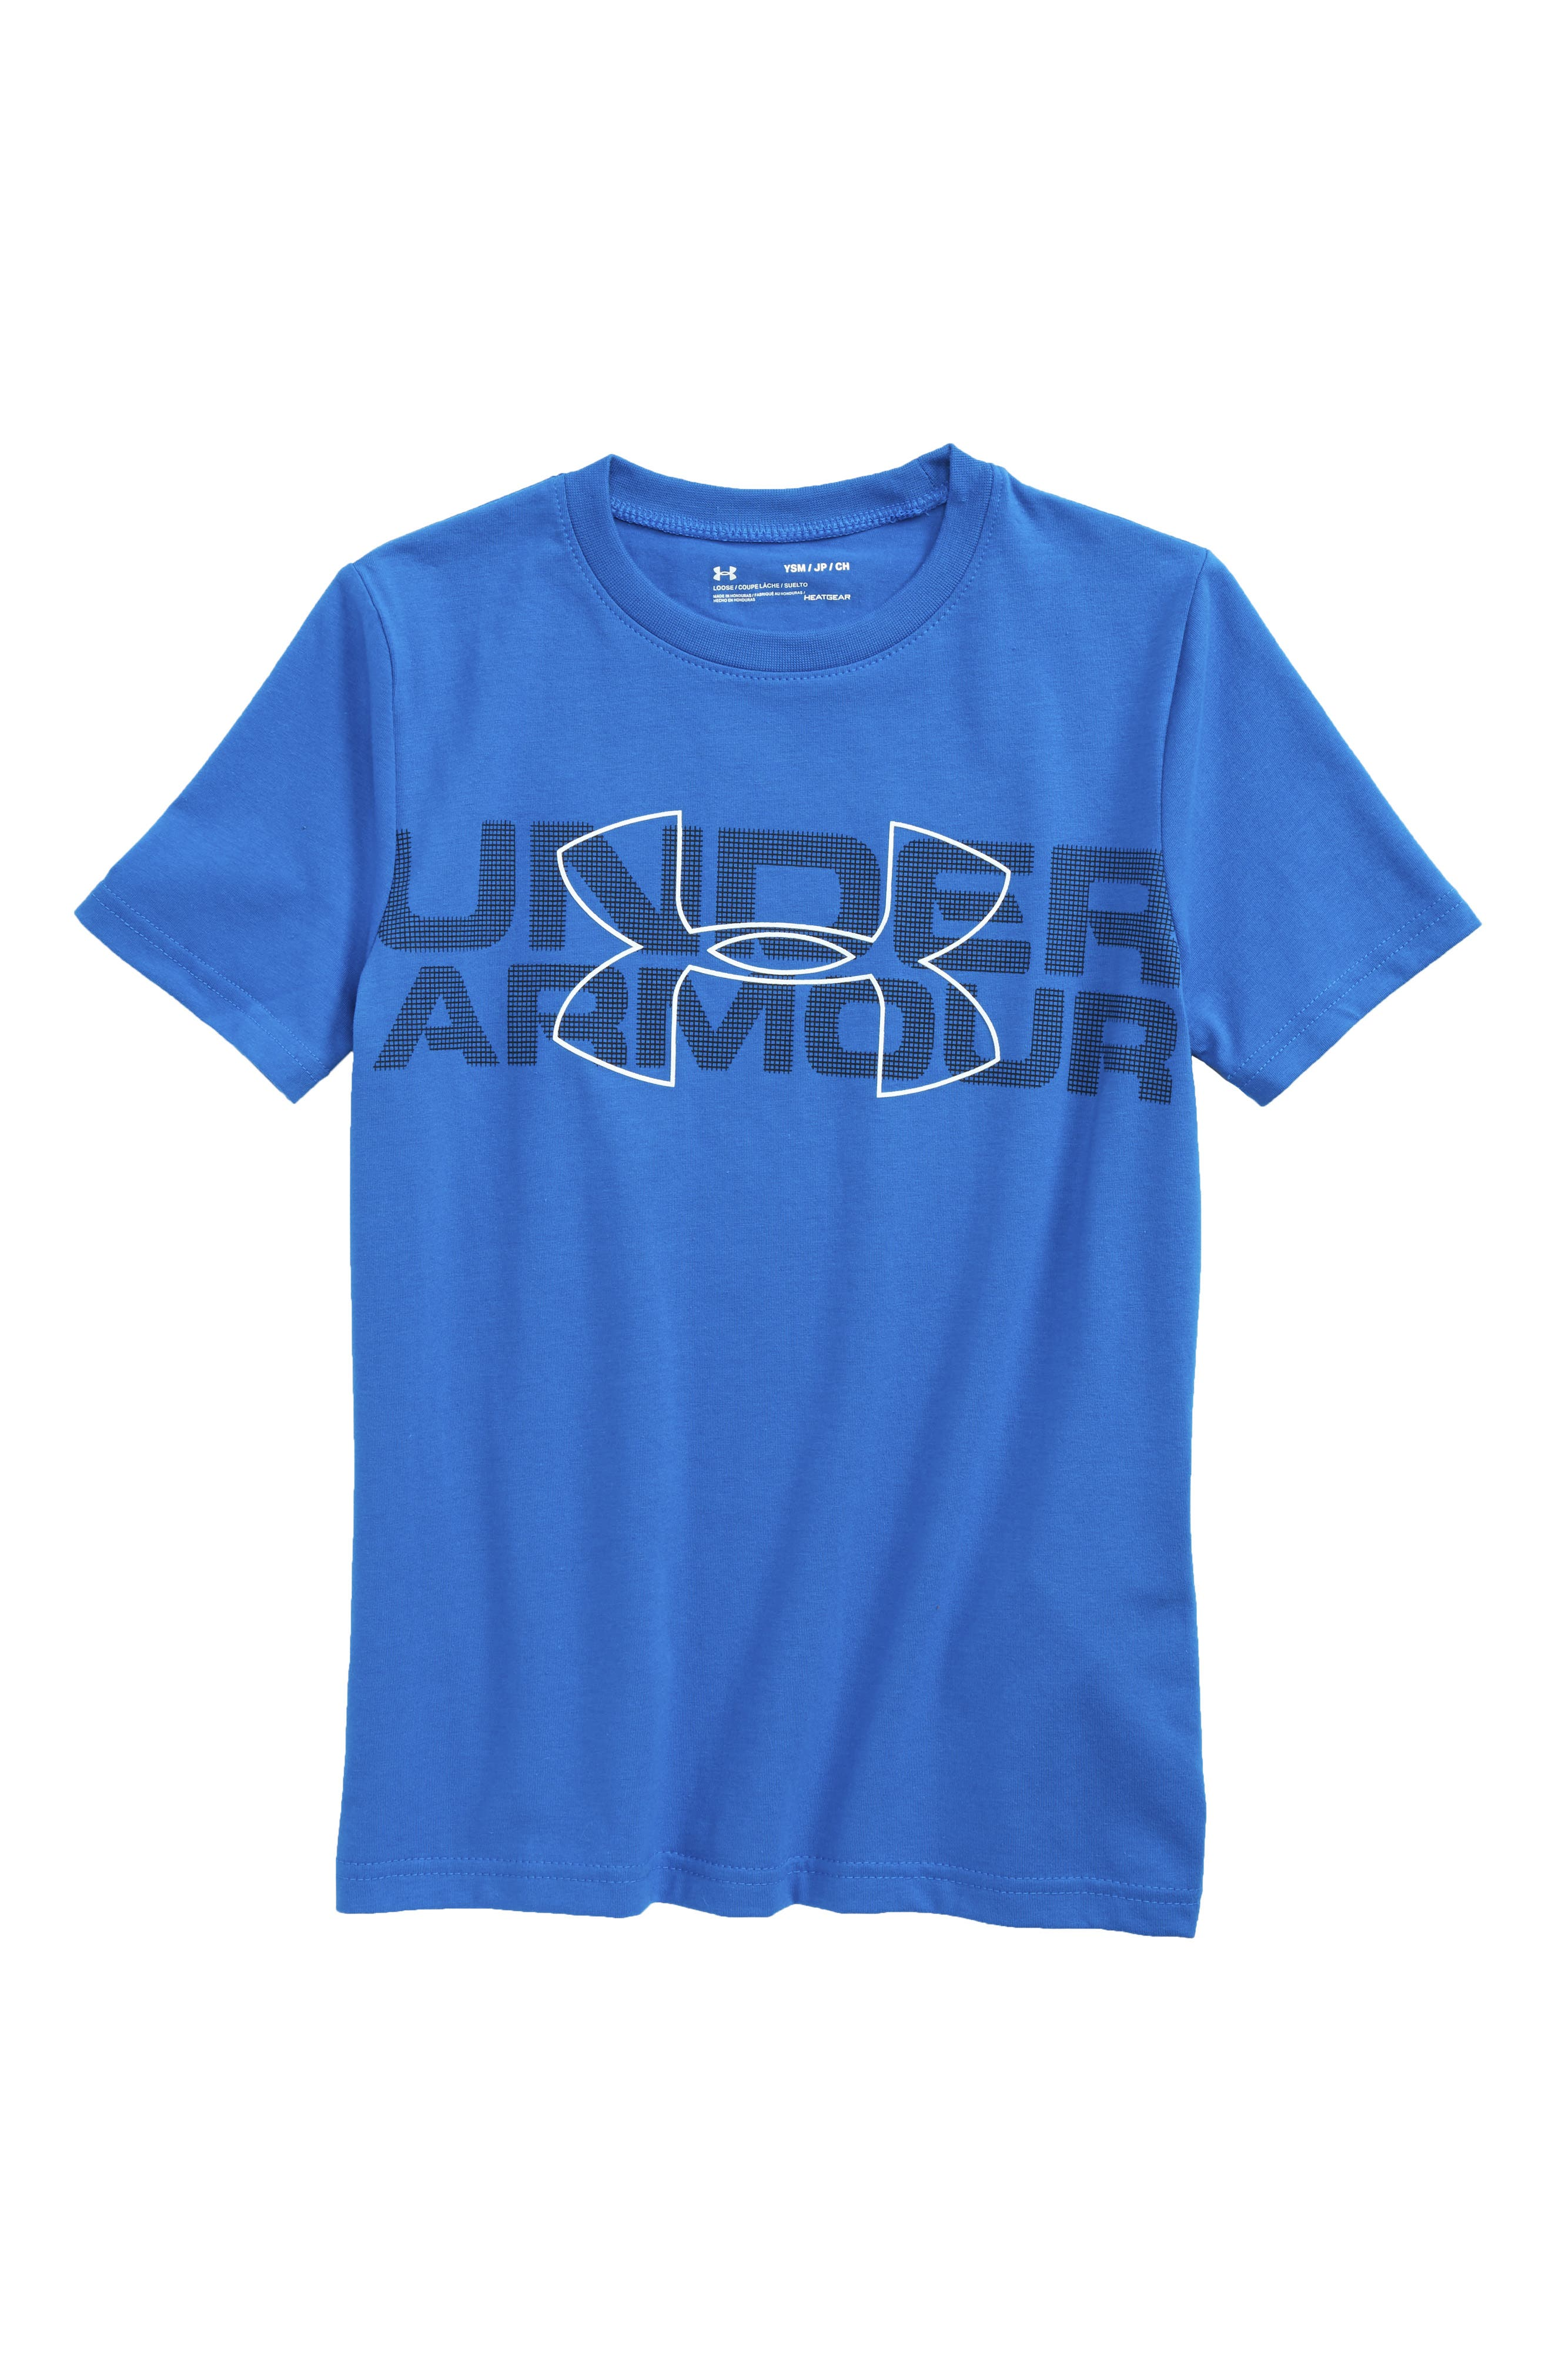 Main Image - Under Armour Duo Graphic T-Shirt (Big Boys)